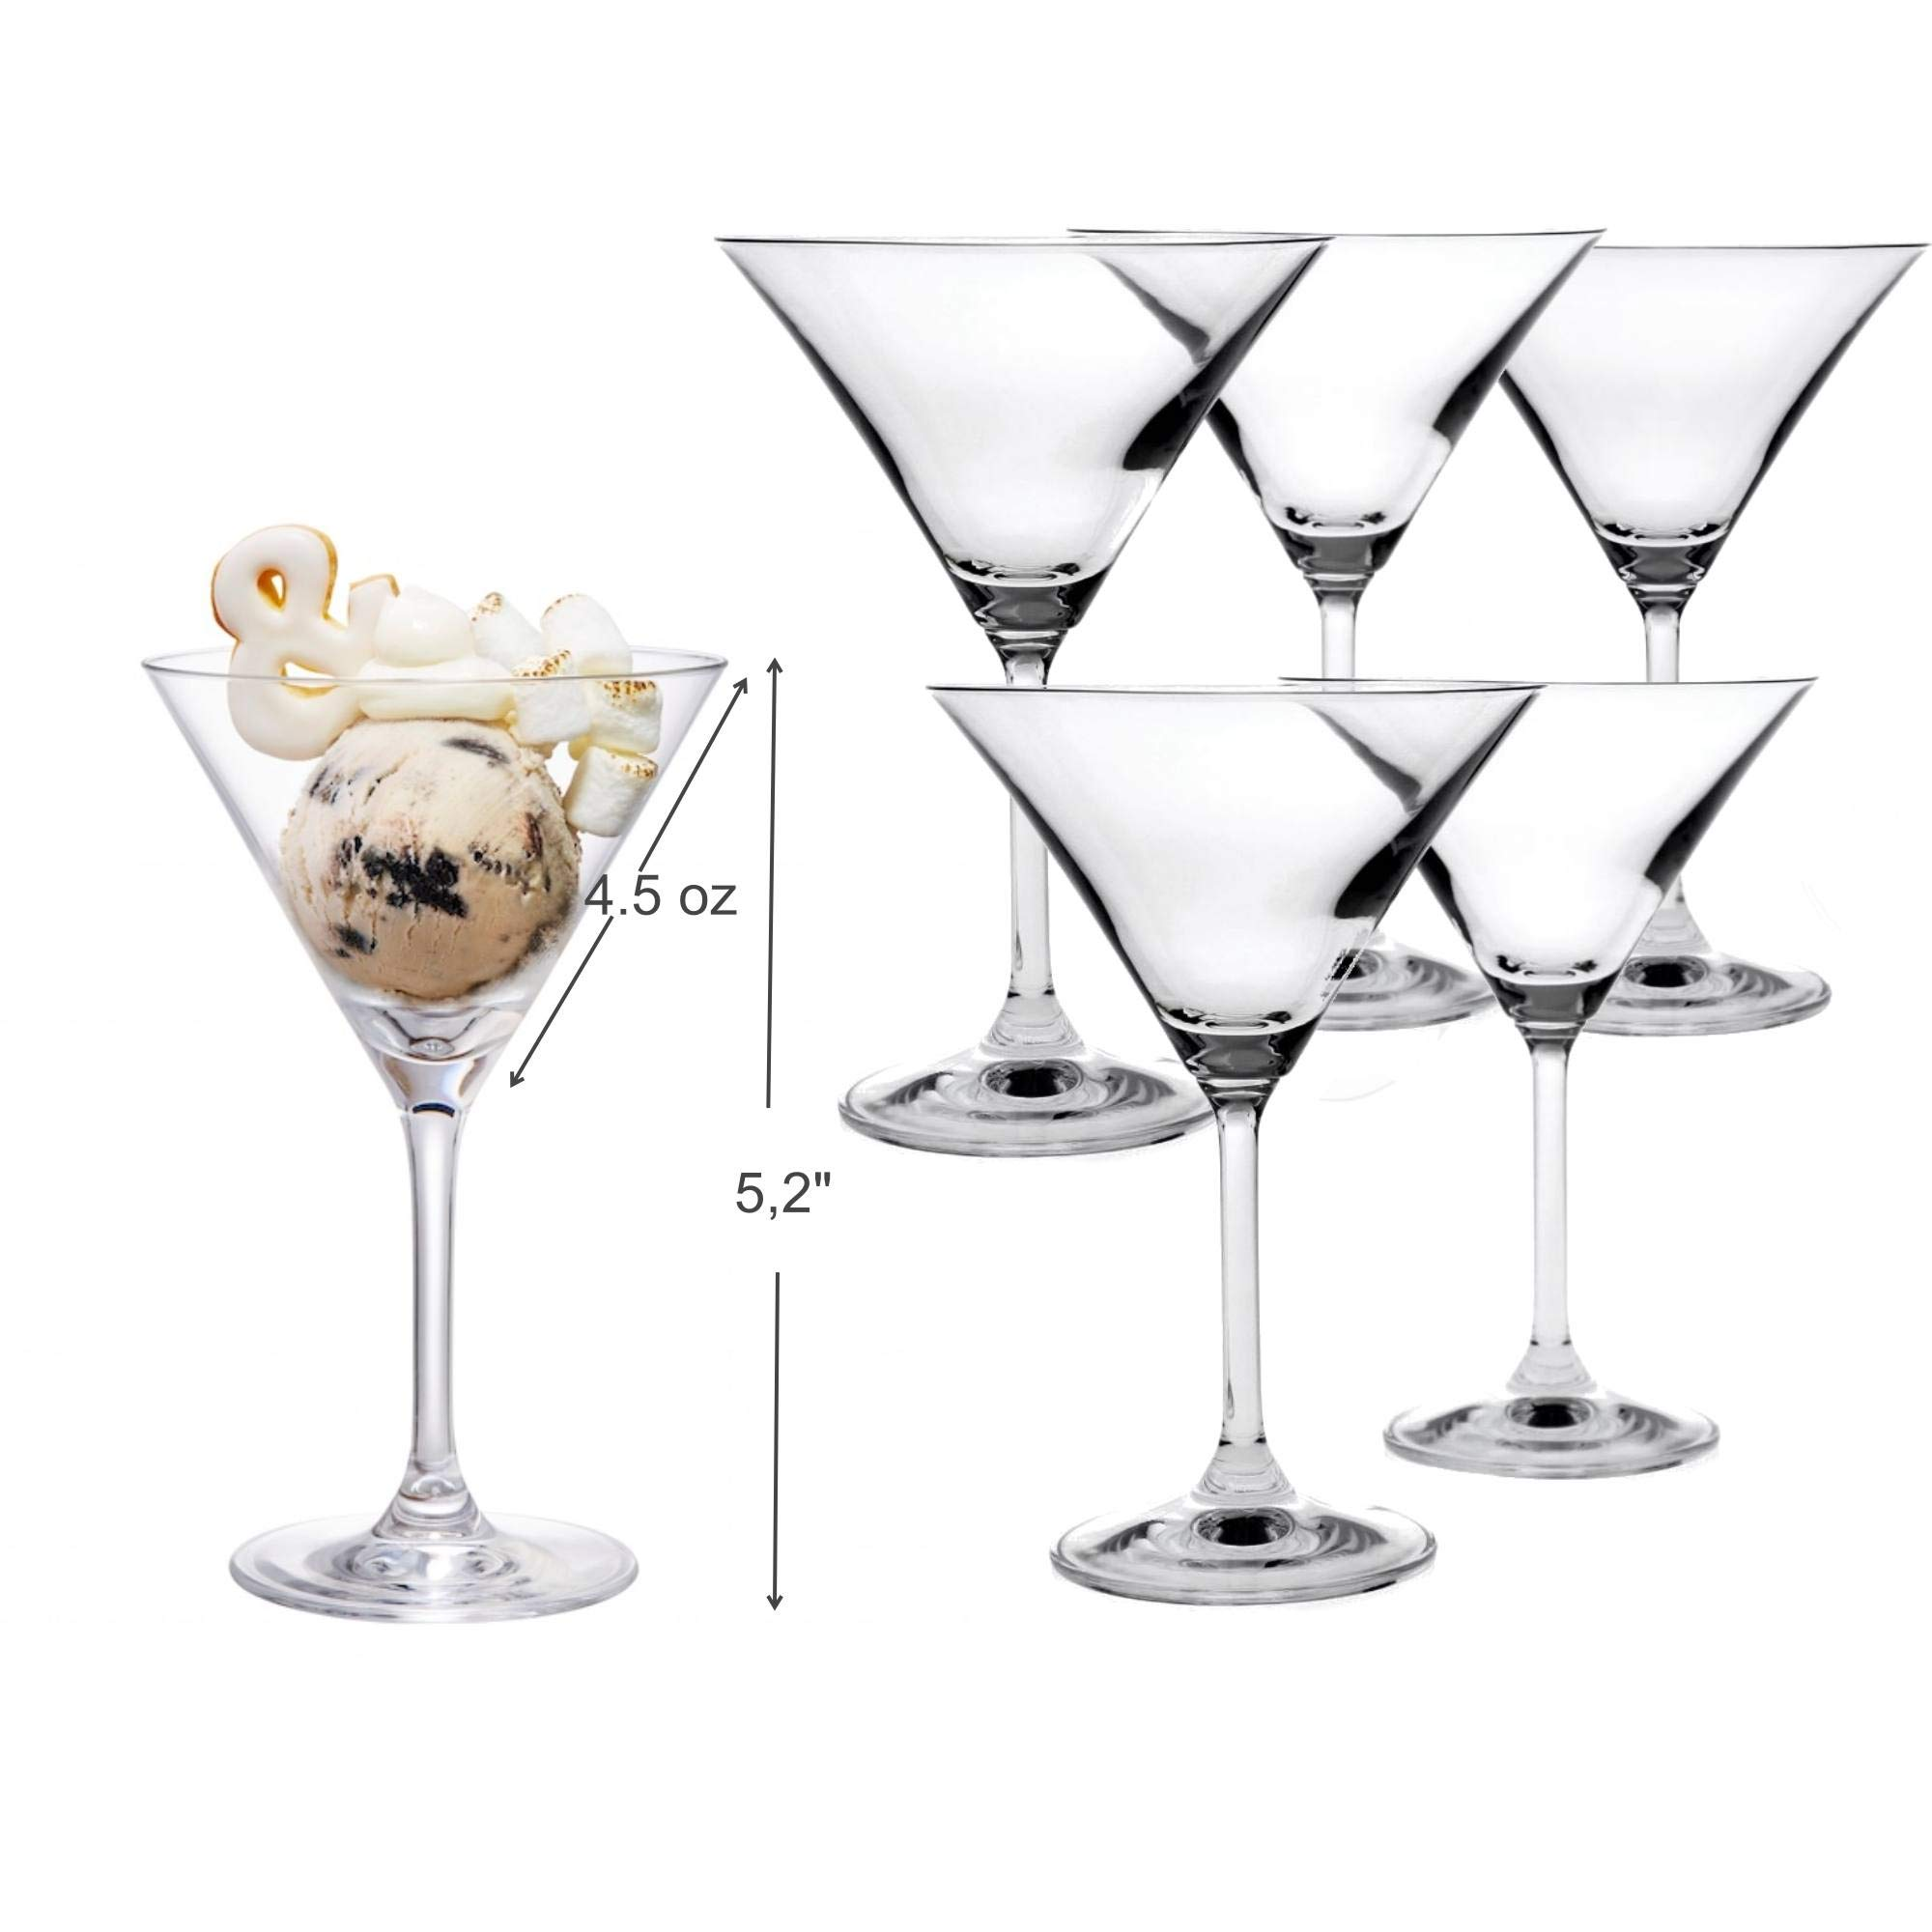 Mini Martini Shaped Glasses -Set of 6 (4.5 Ounce) - Perfect Desserts Glasses with Stem by PARNOO